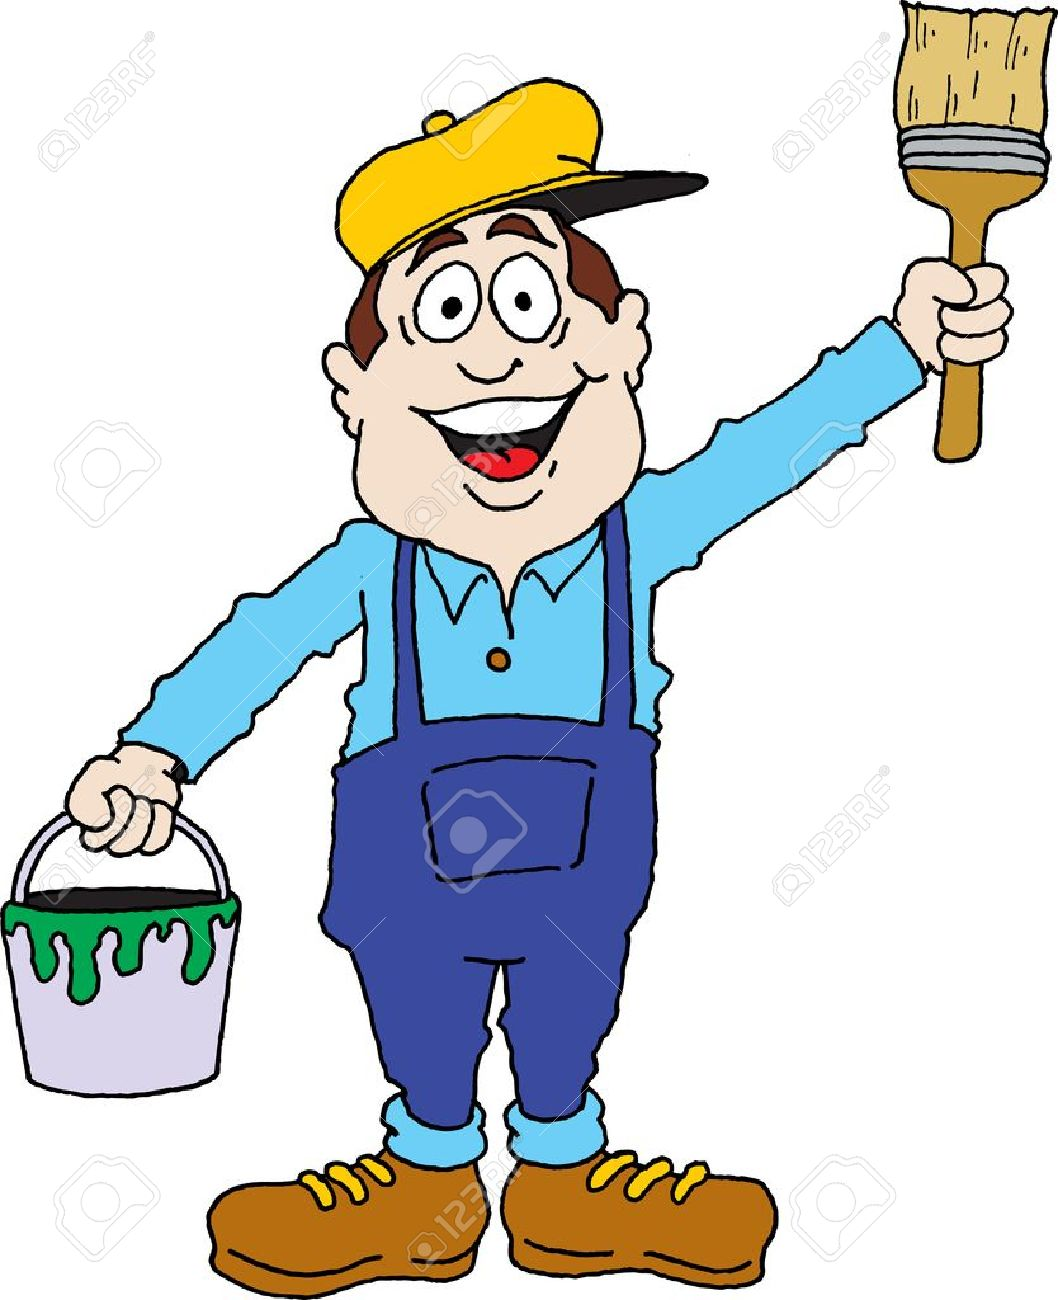 Cartoon image of a painter ready for work. Stock Vector - 19354448